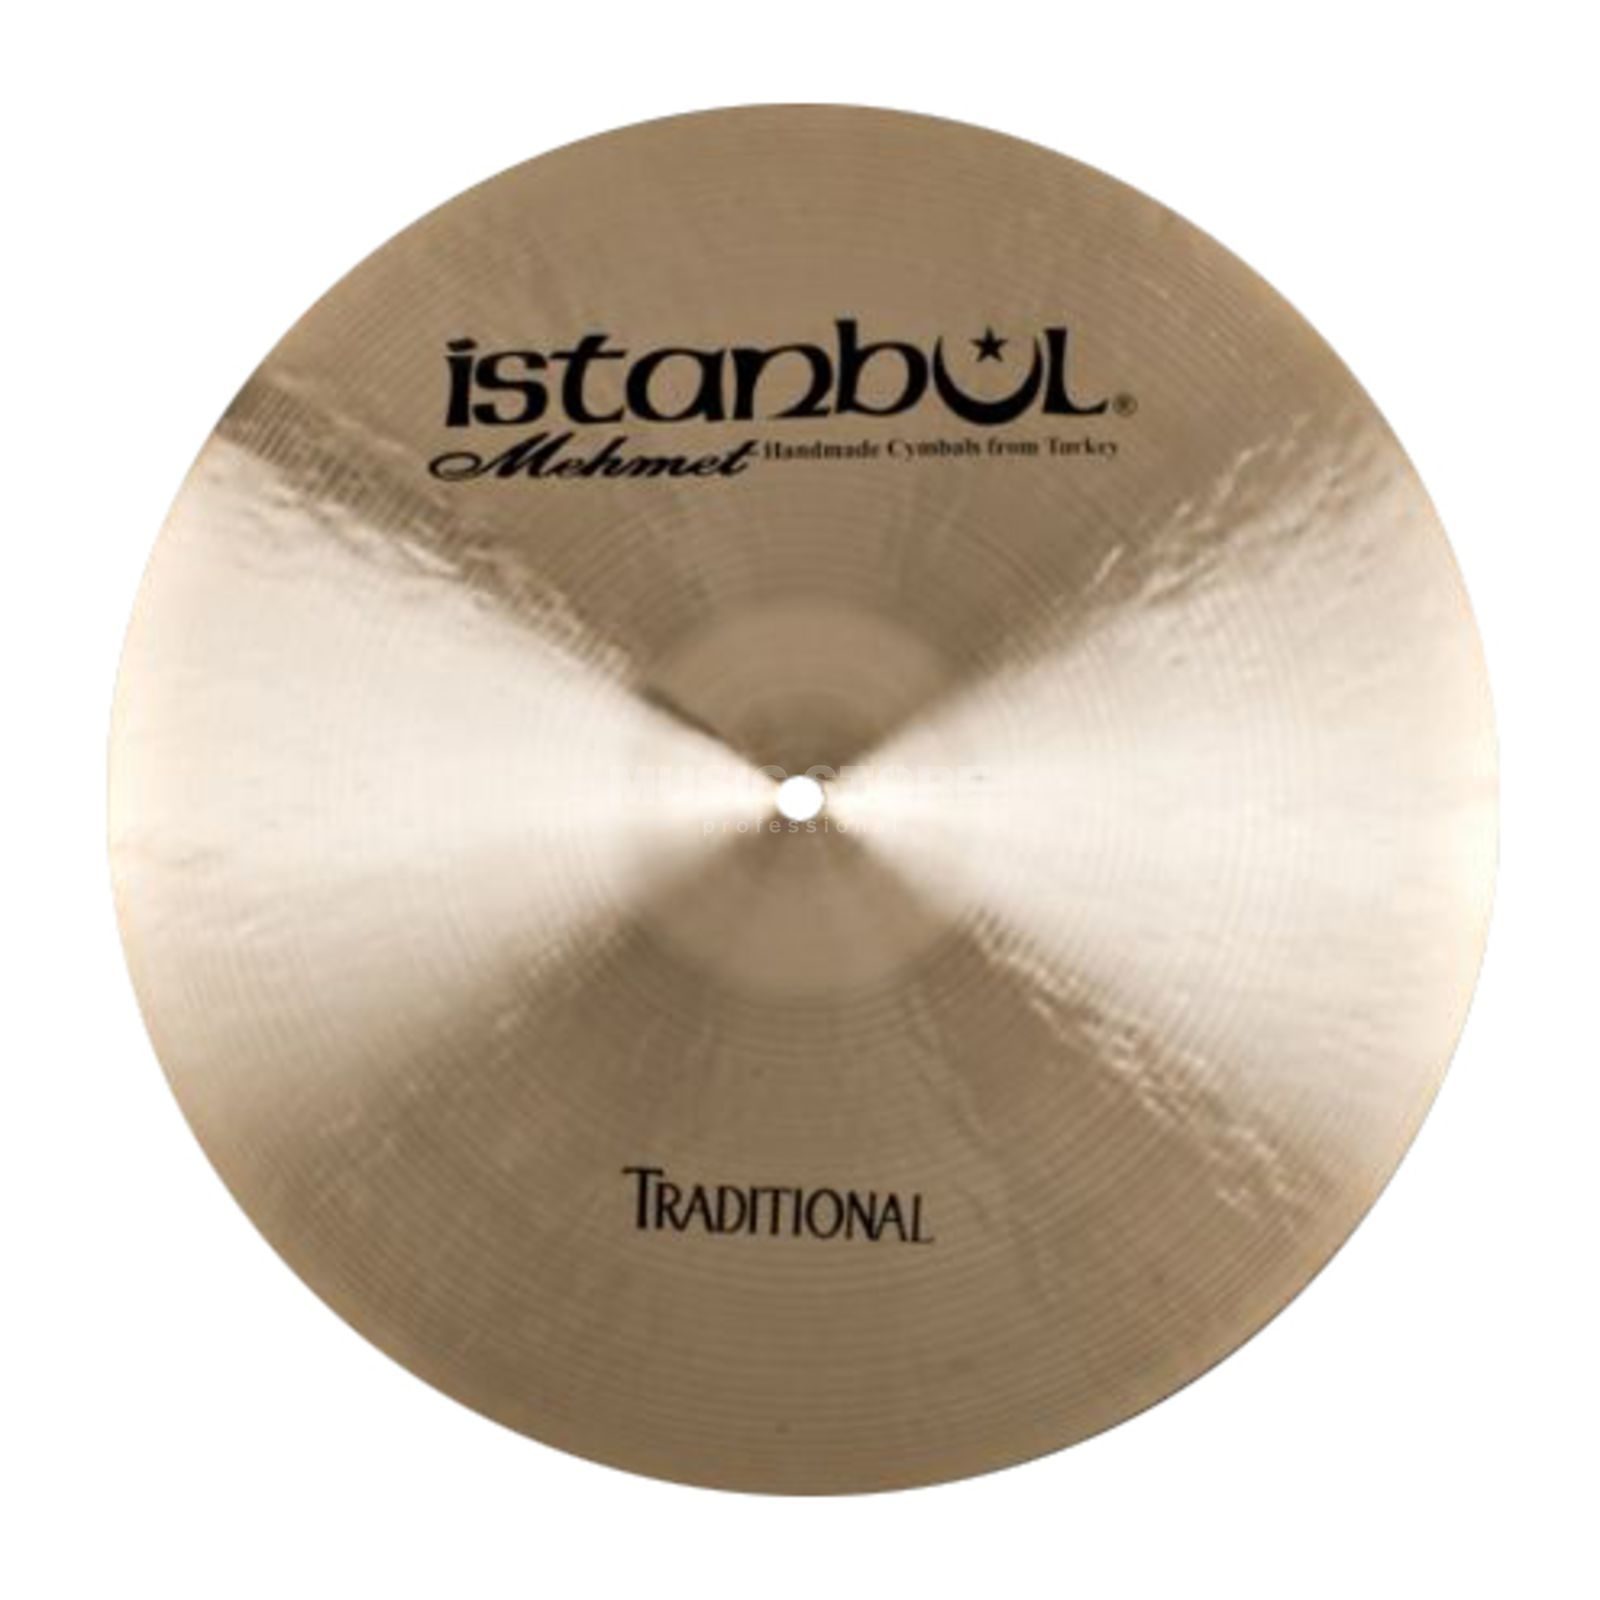 "Istanbul Traditional Dark Crash 16"", CD17 Produktbillede"